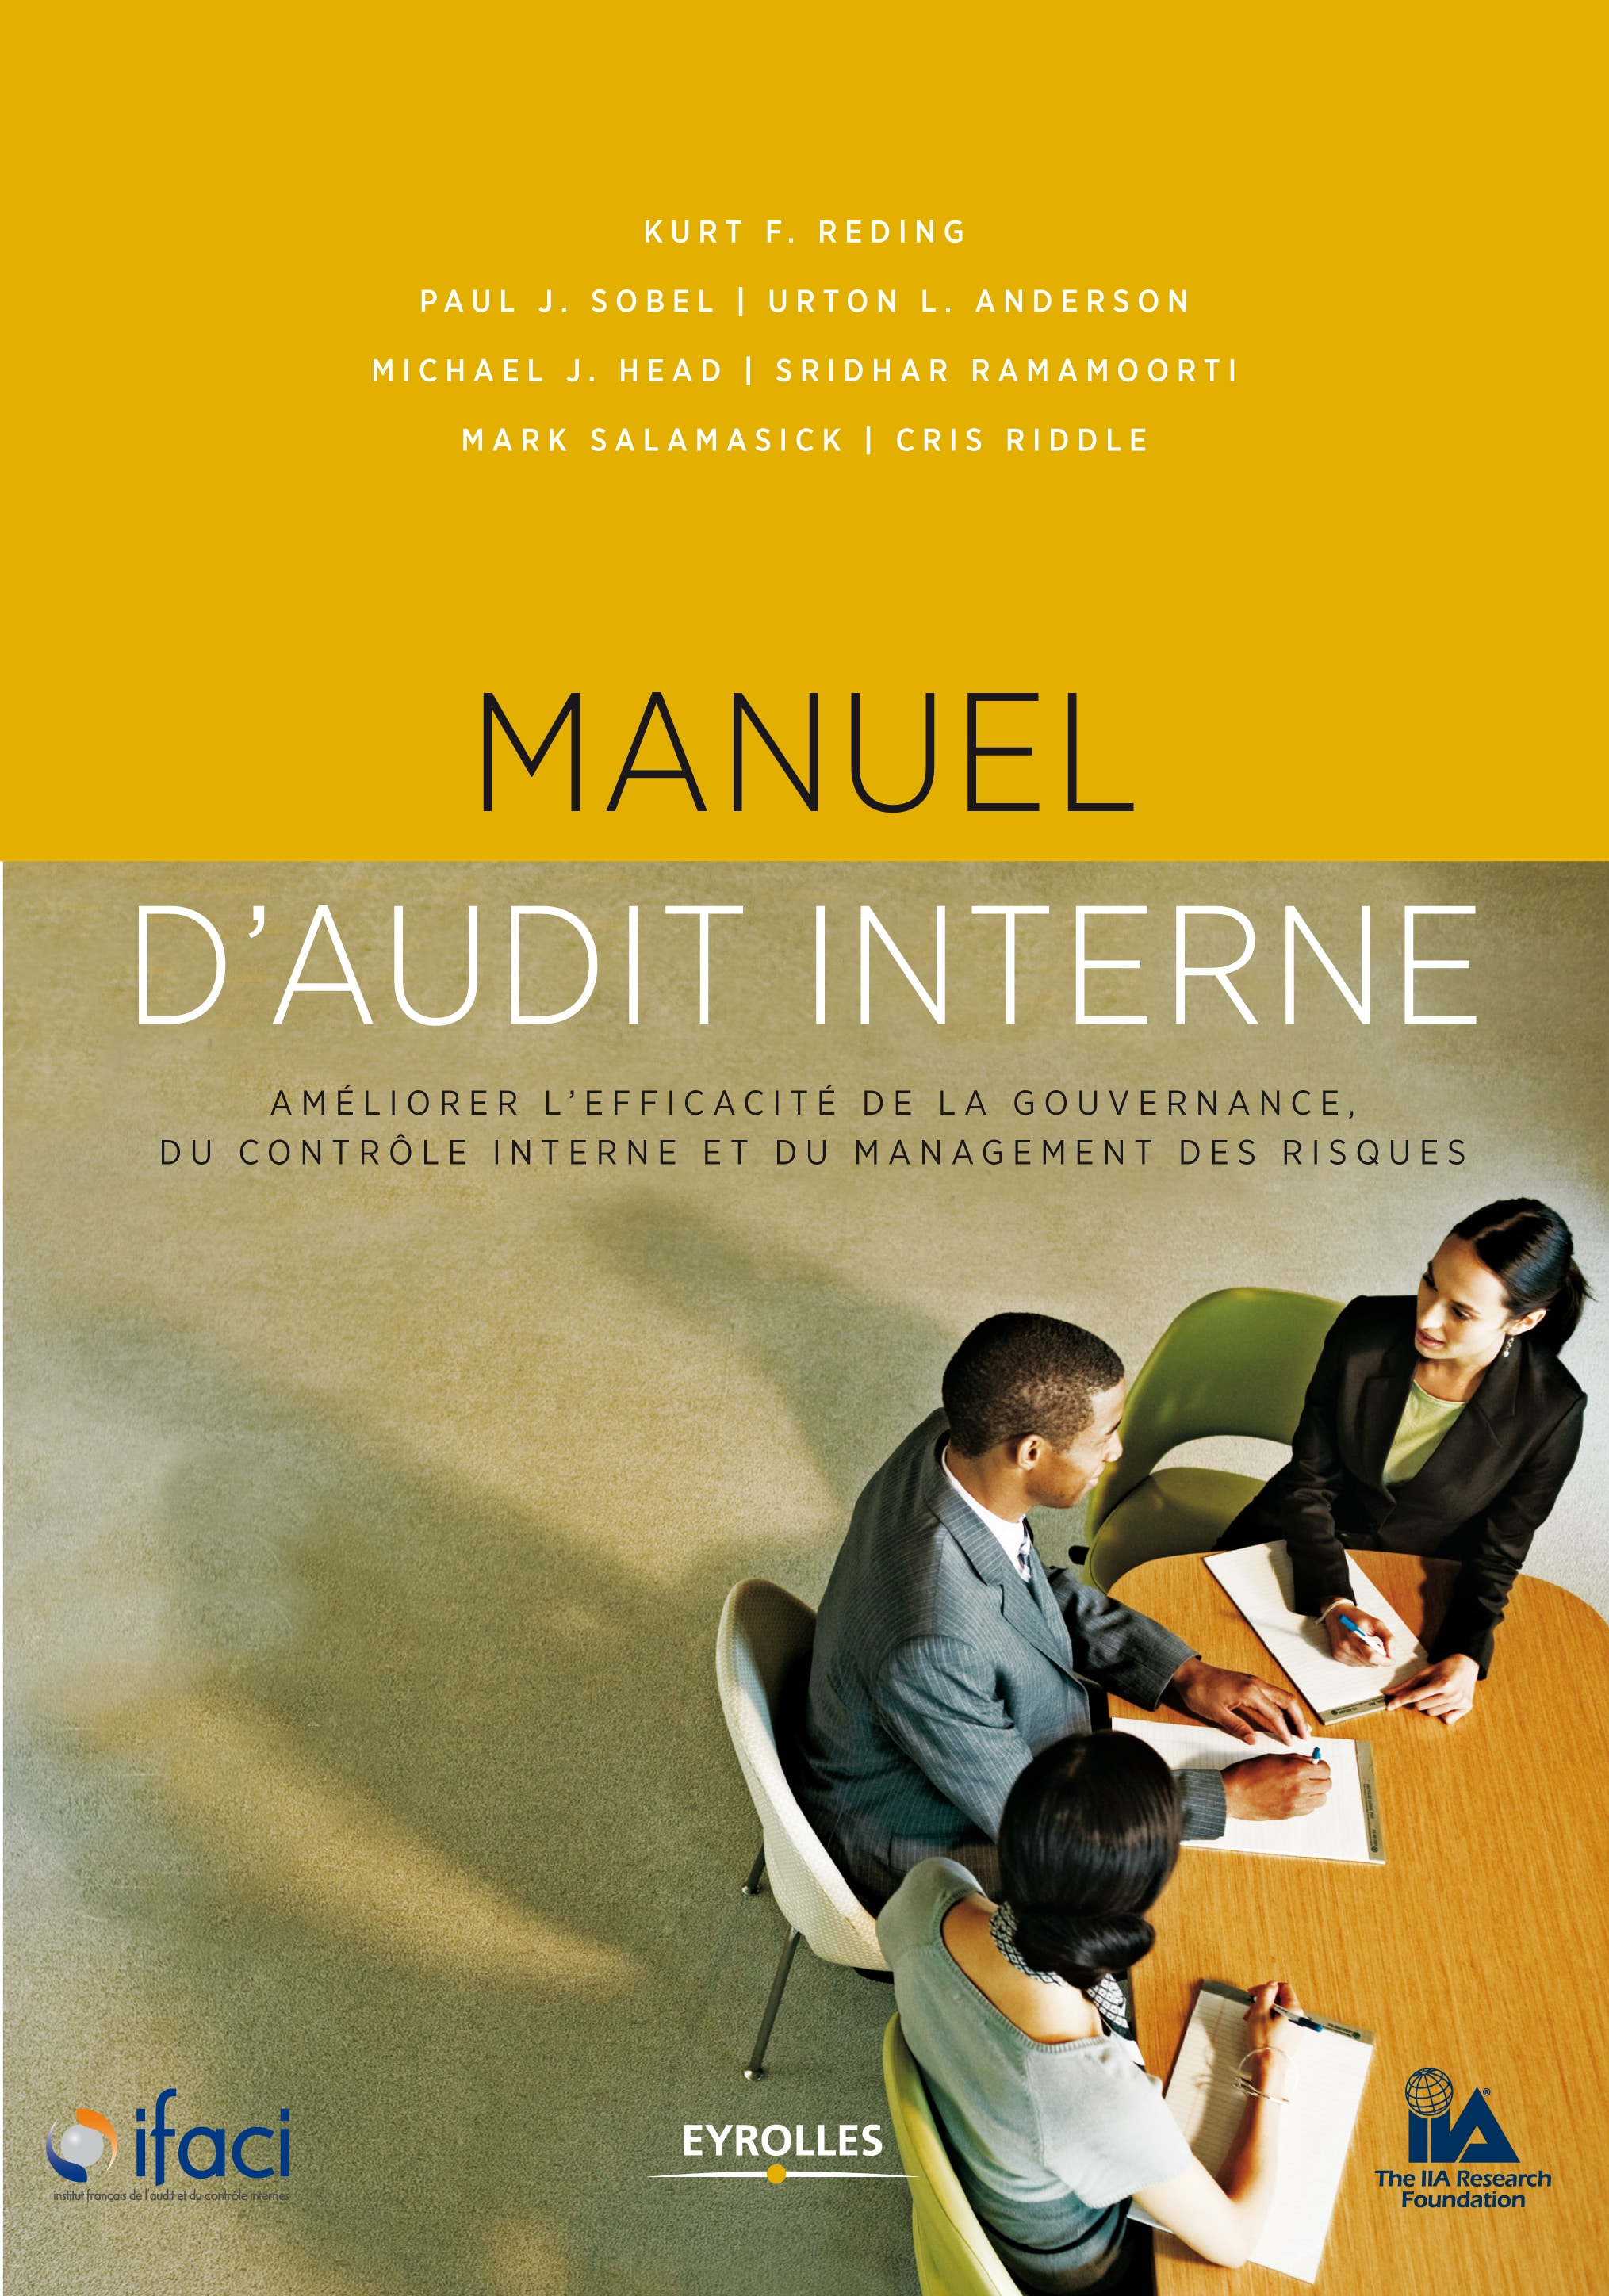 Le Manuel d'audit interne : nouvelle édition !